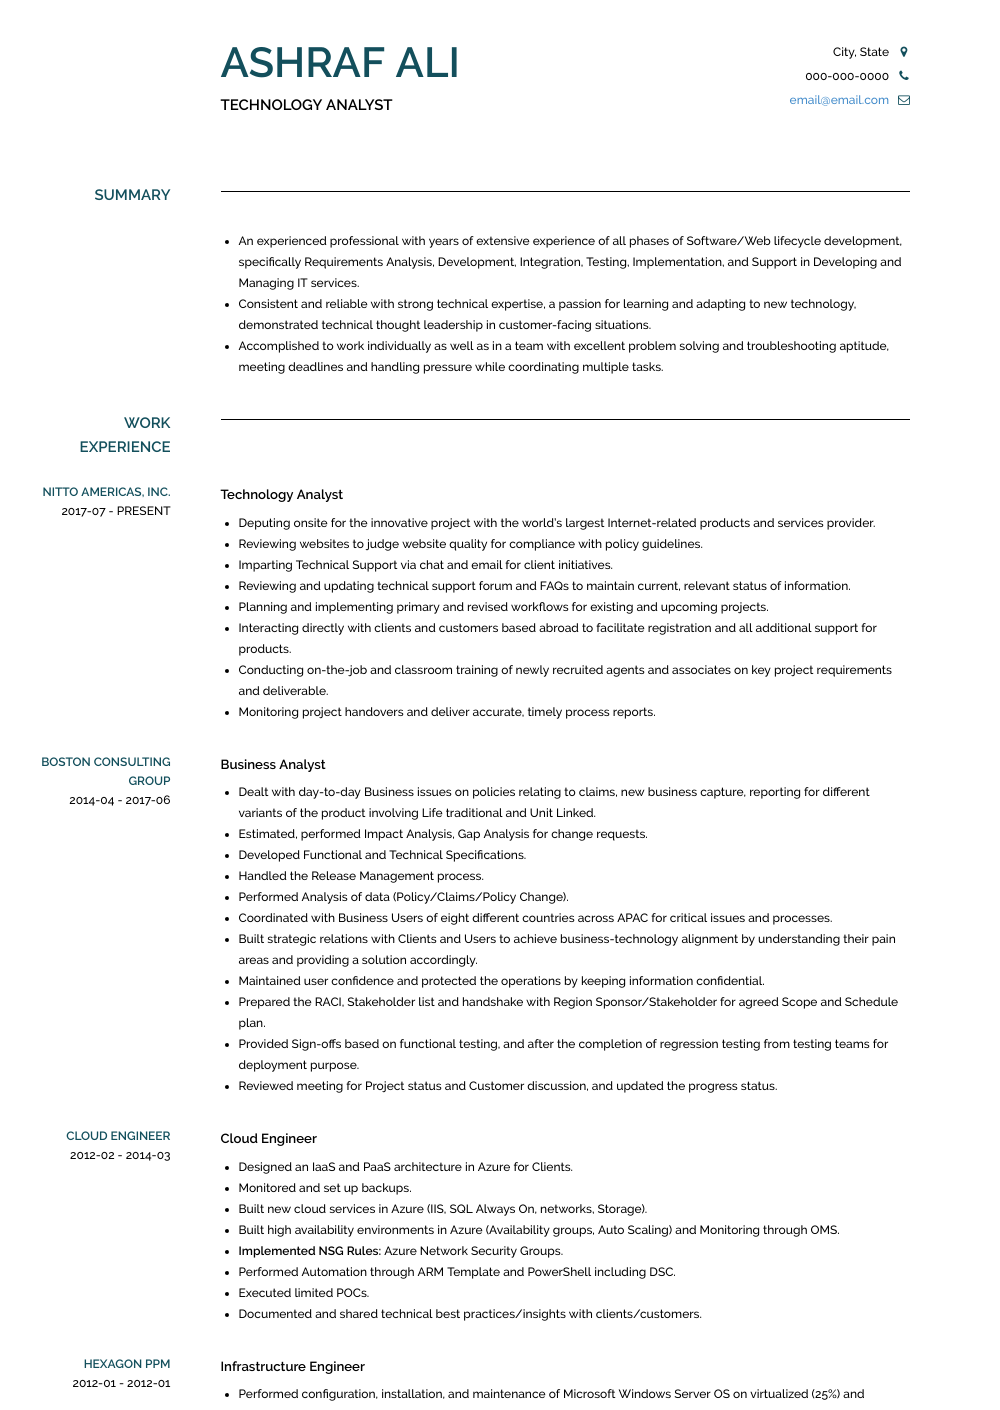 Technology Analyst - Resume Samples & Templates | VisualCV